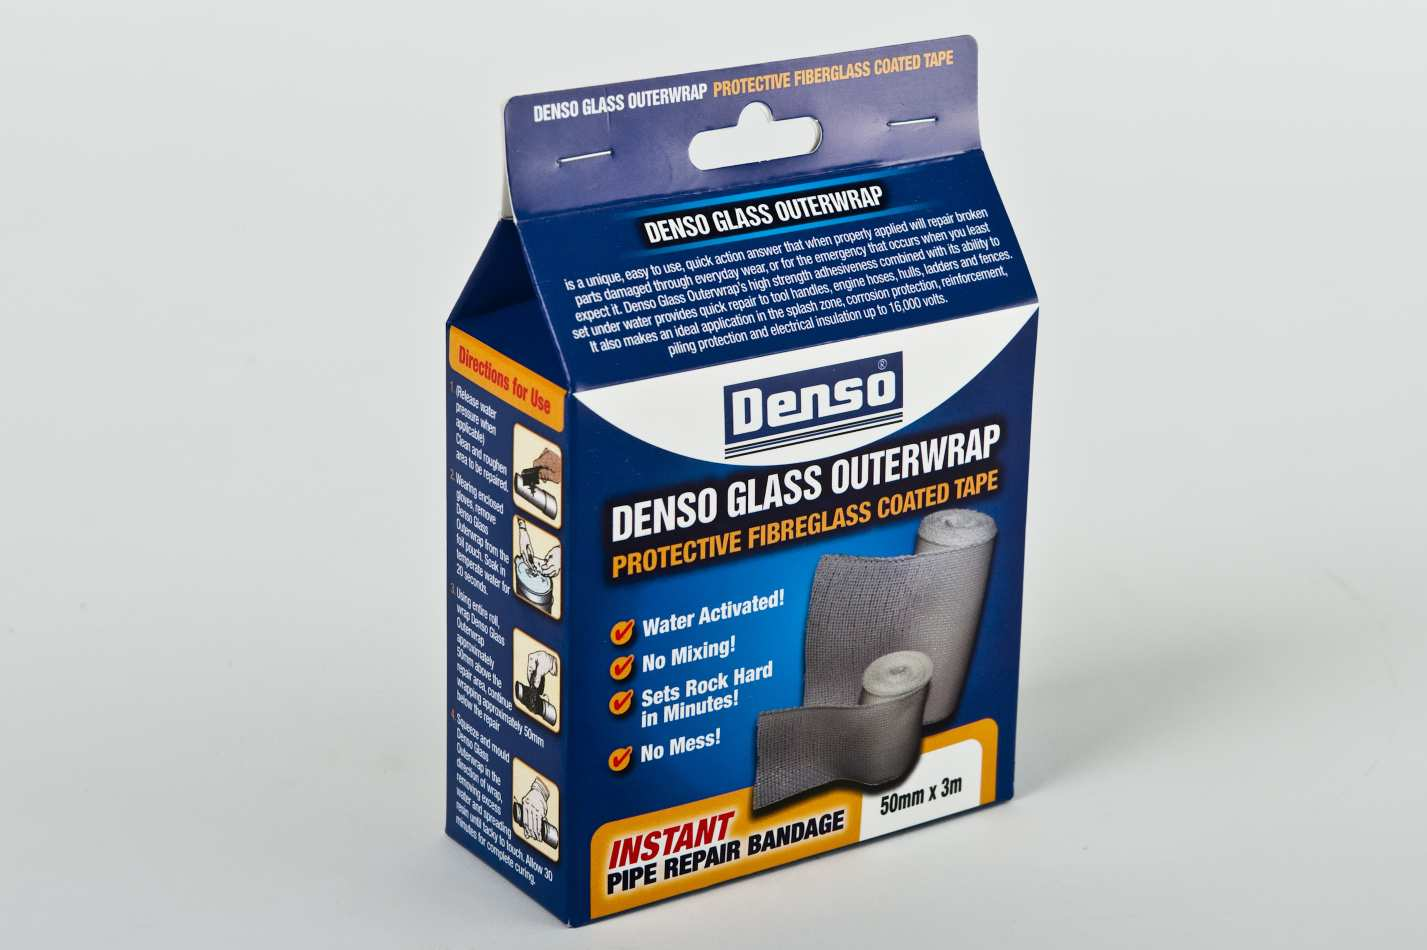 Denso application guide for glass outerwrap